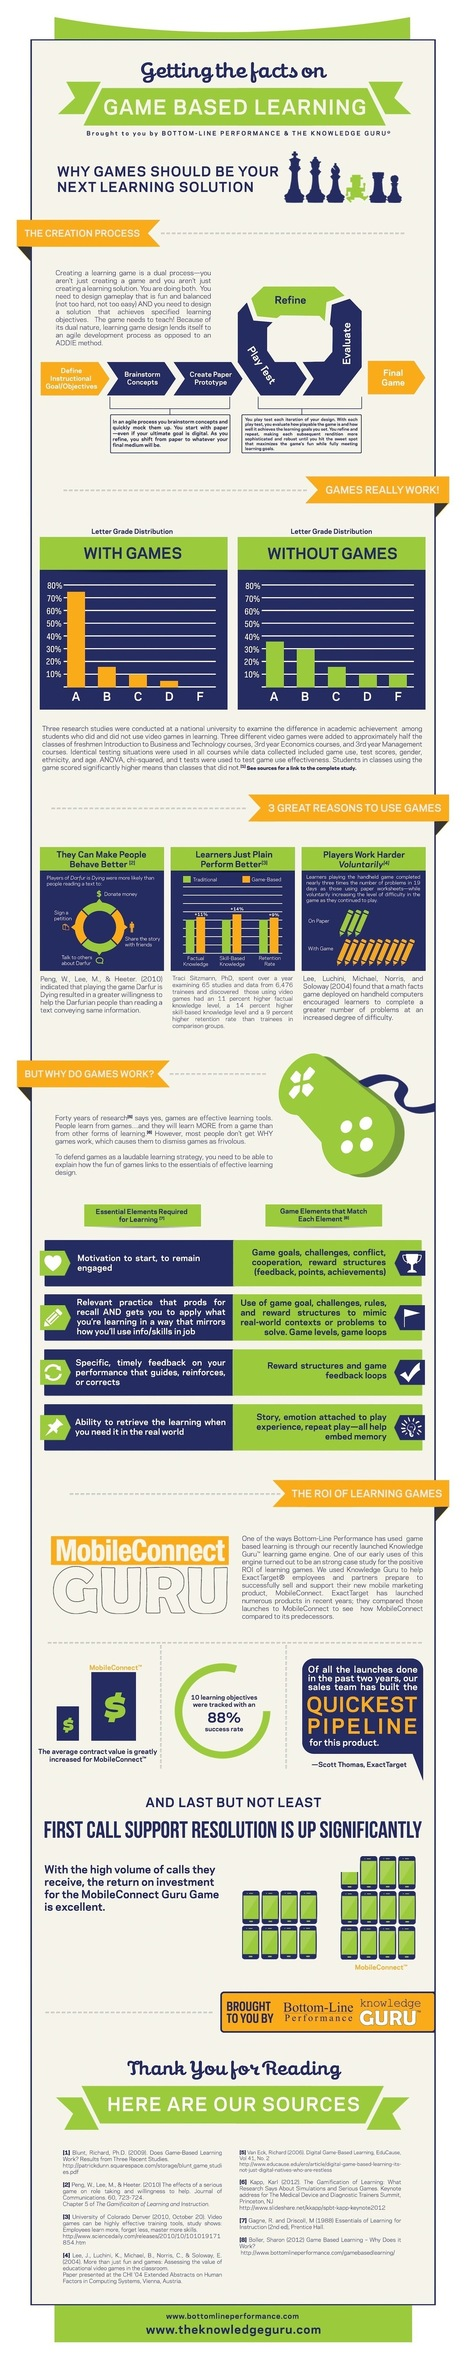 Why Games Should Be Your Next Learning Solution Infographic - e-Learning Infographics   Gamification for Learning   Scoop.it